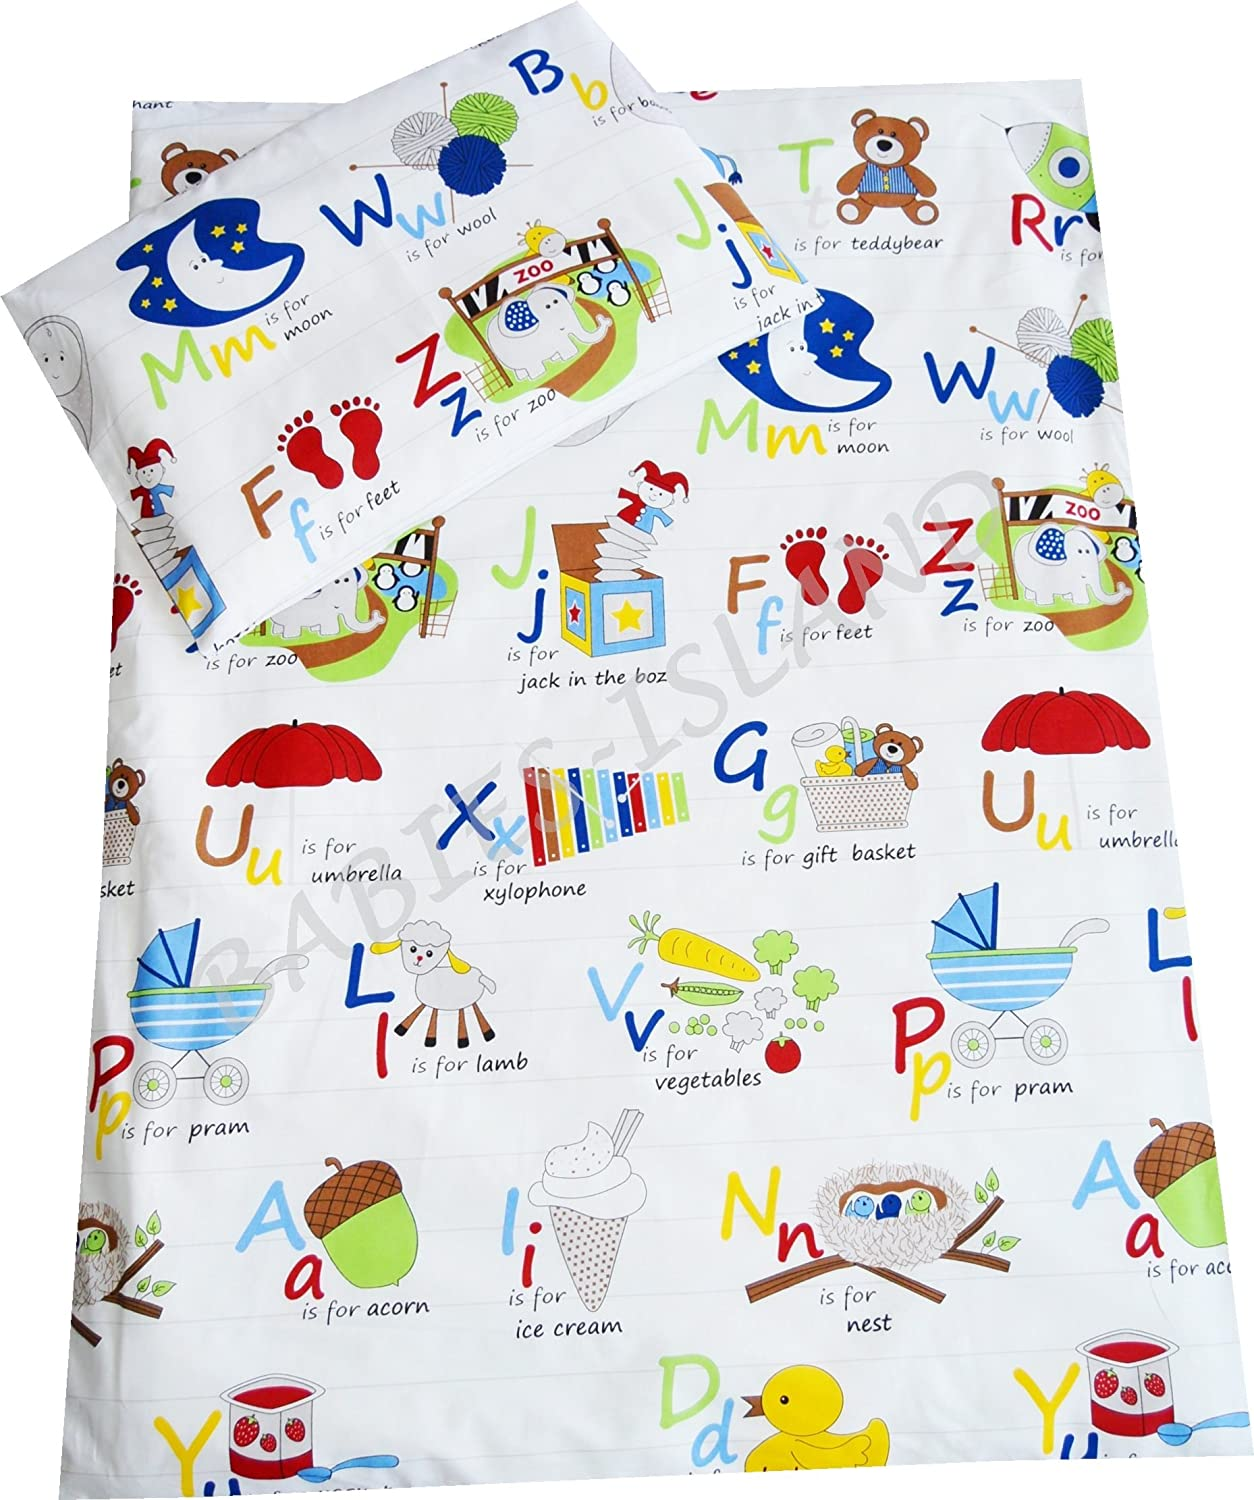 Babies-Island A 2 Piece Bedding Set Pillowcase+Duvet Cover For Baby Toddler To Fit Cot/Cot Bed - ALPHABET (120x150 cm)